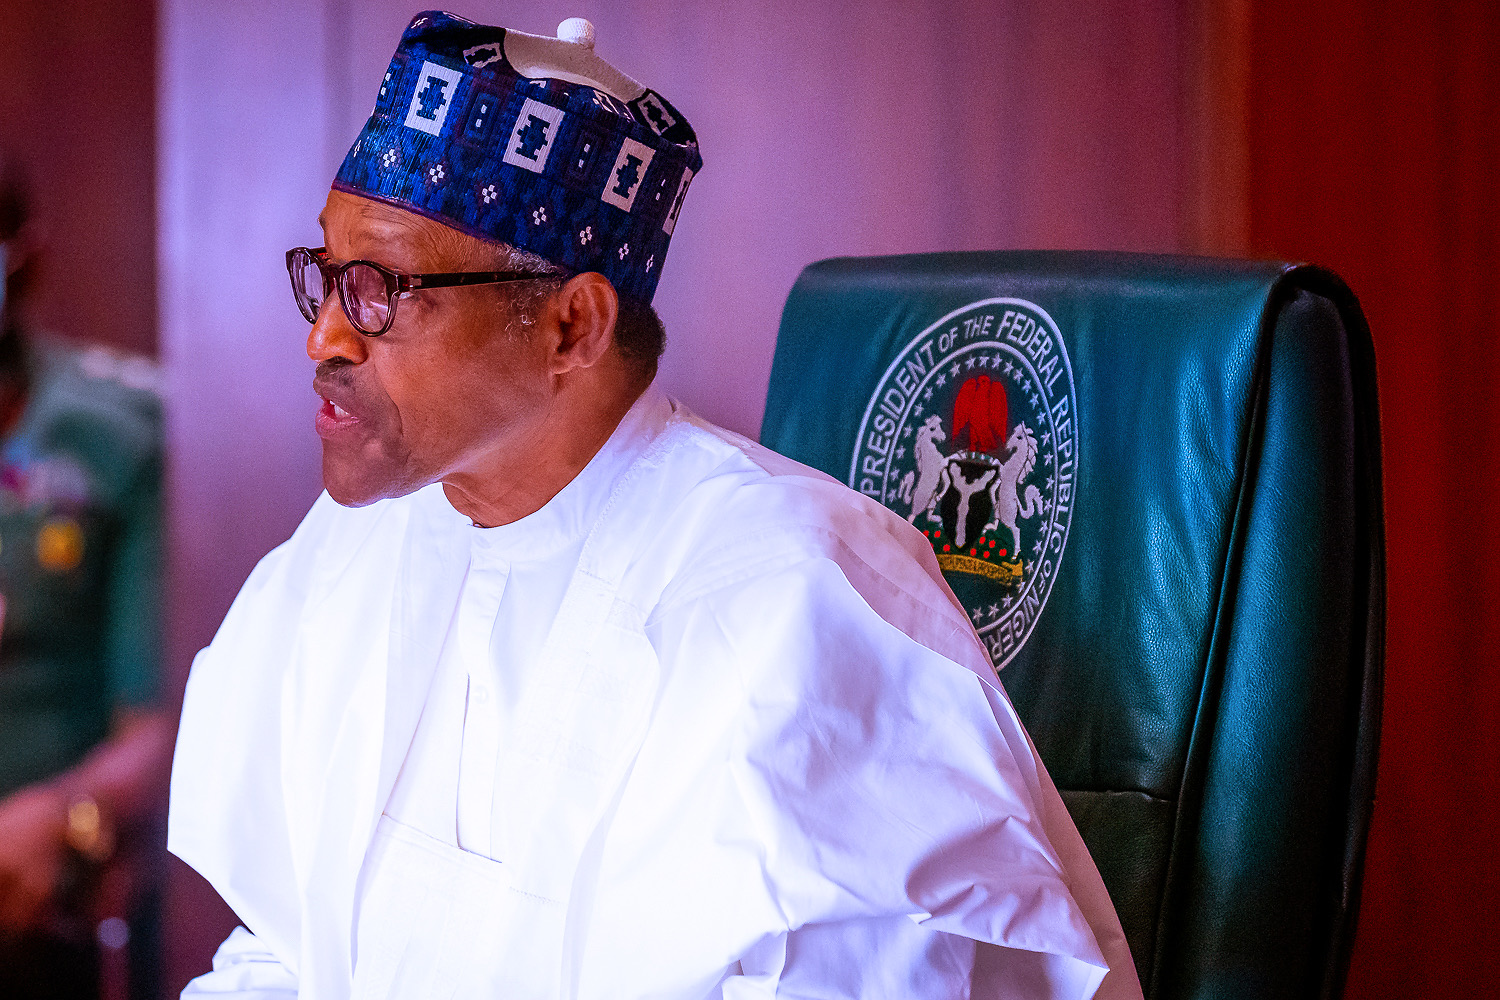 Protests: Buhari condemns hate messages, eviction notices